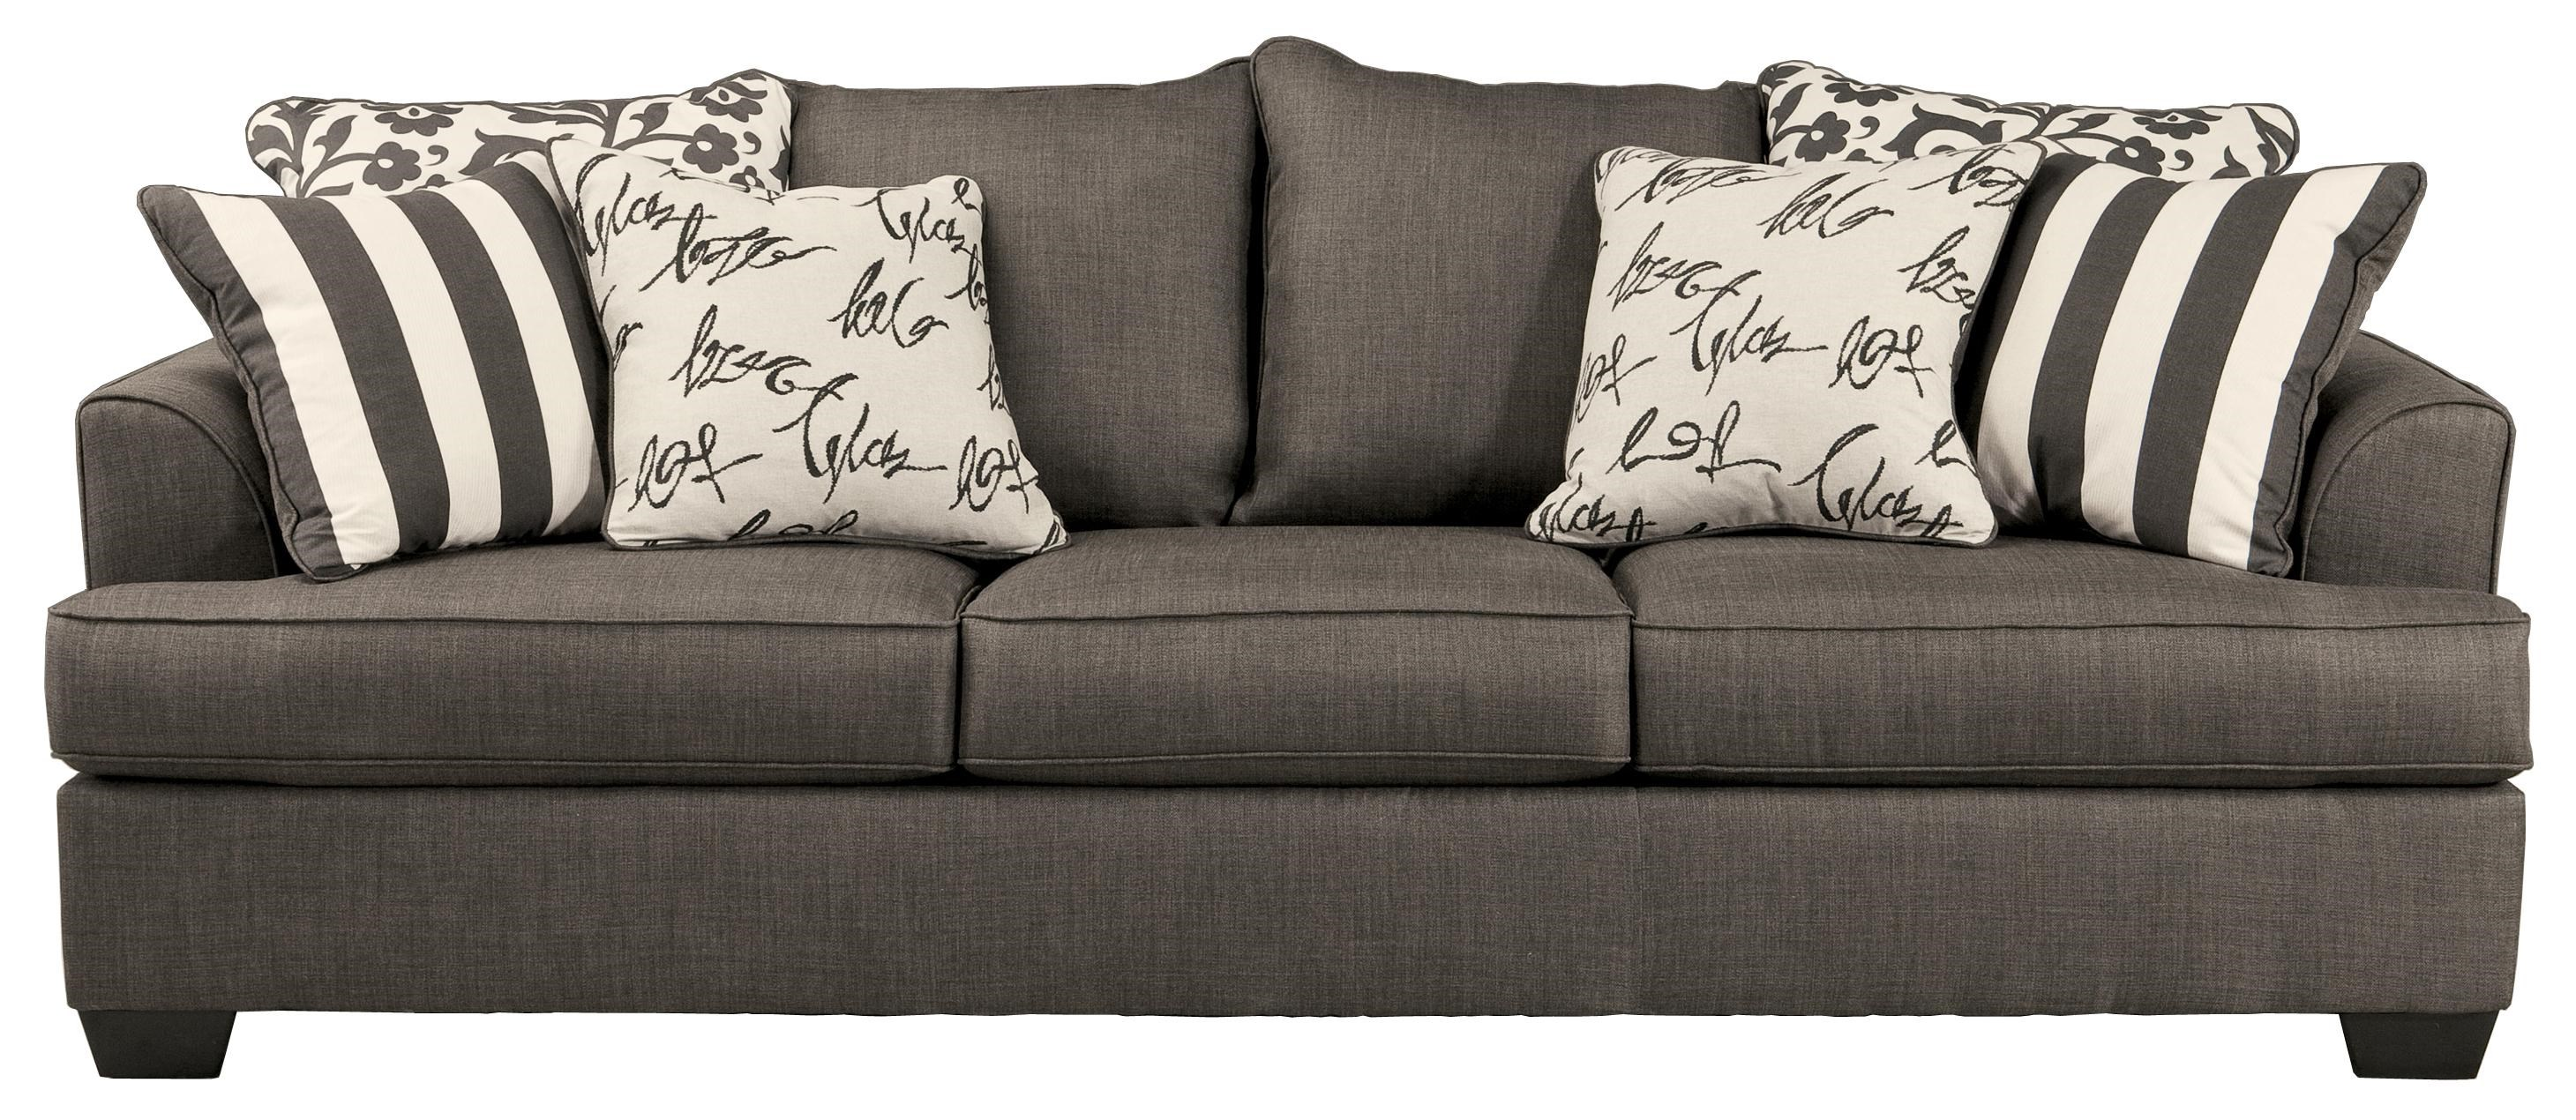 Signature Design by Ashley Levon Charcoal Sofa with